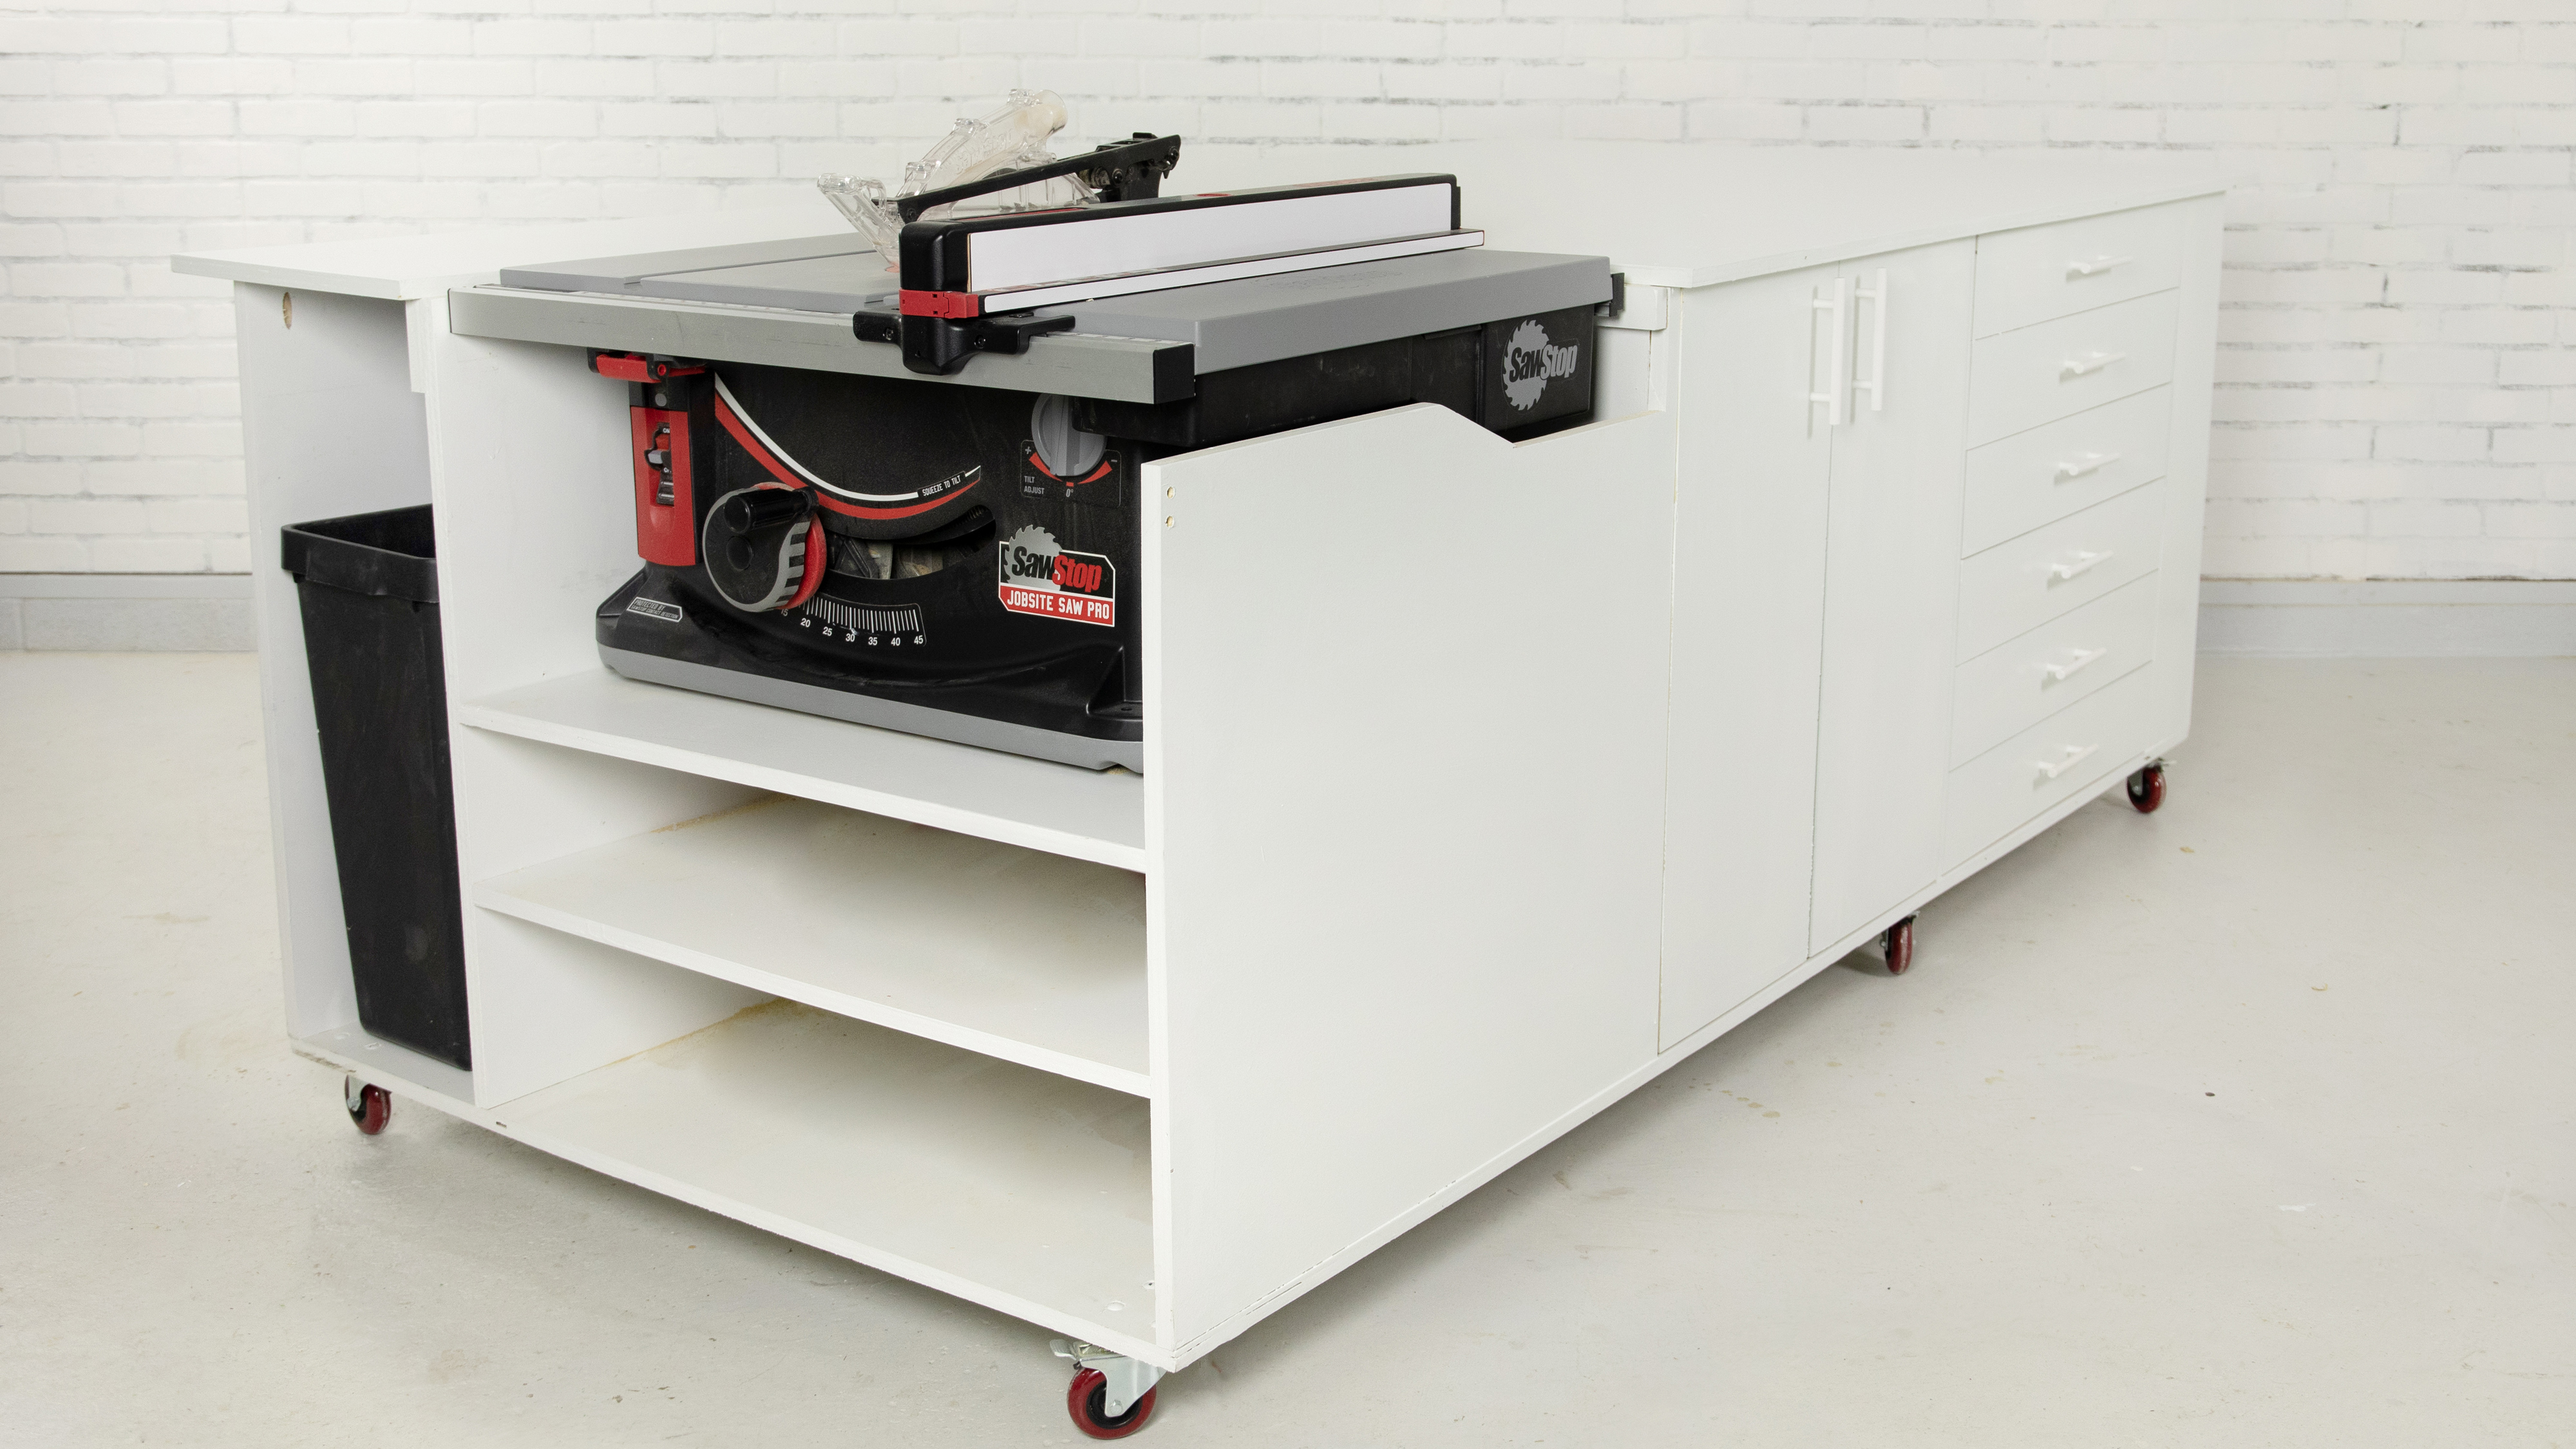 Mobile Workbench with table saw, finished